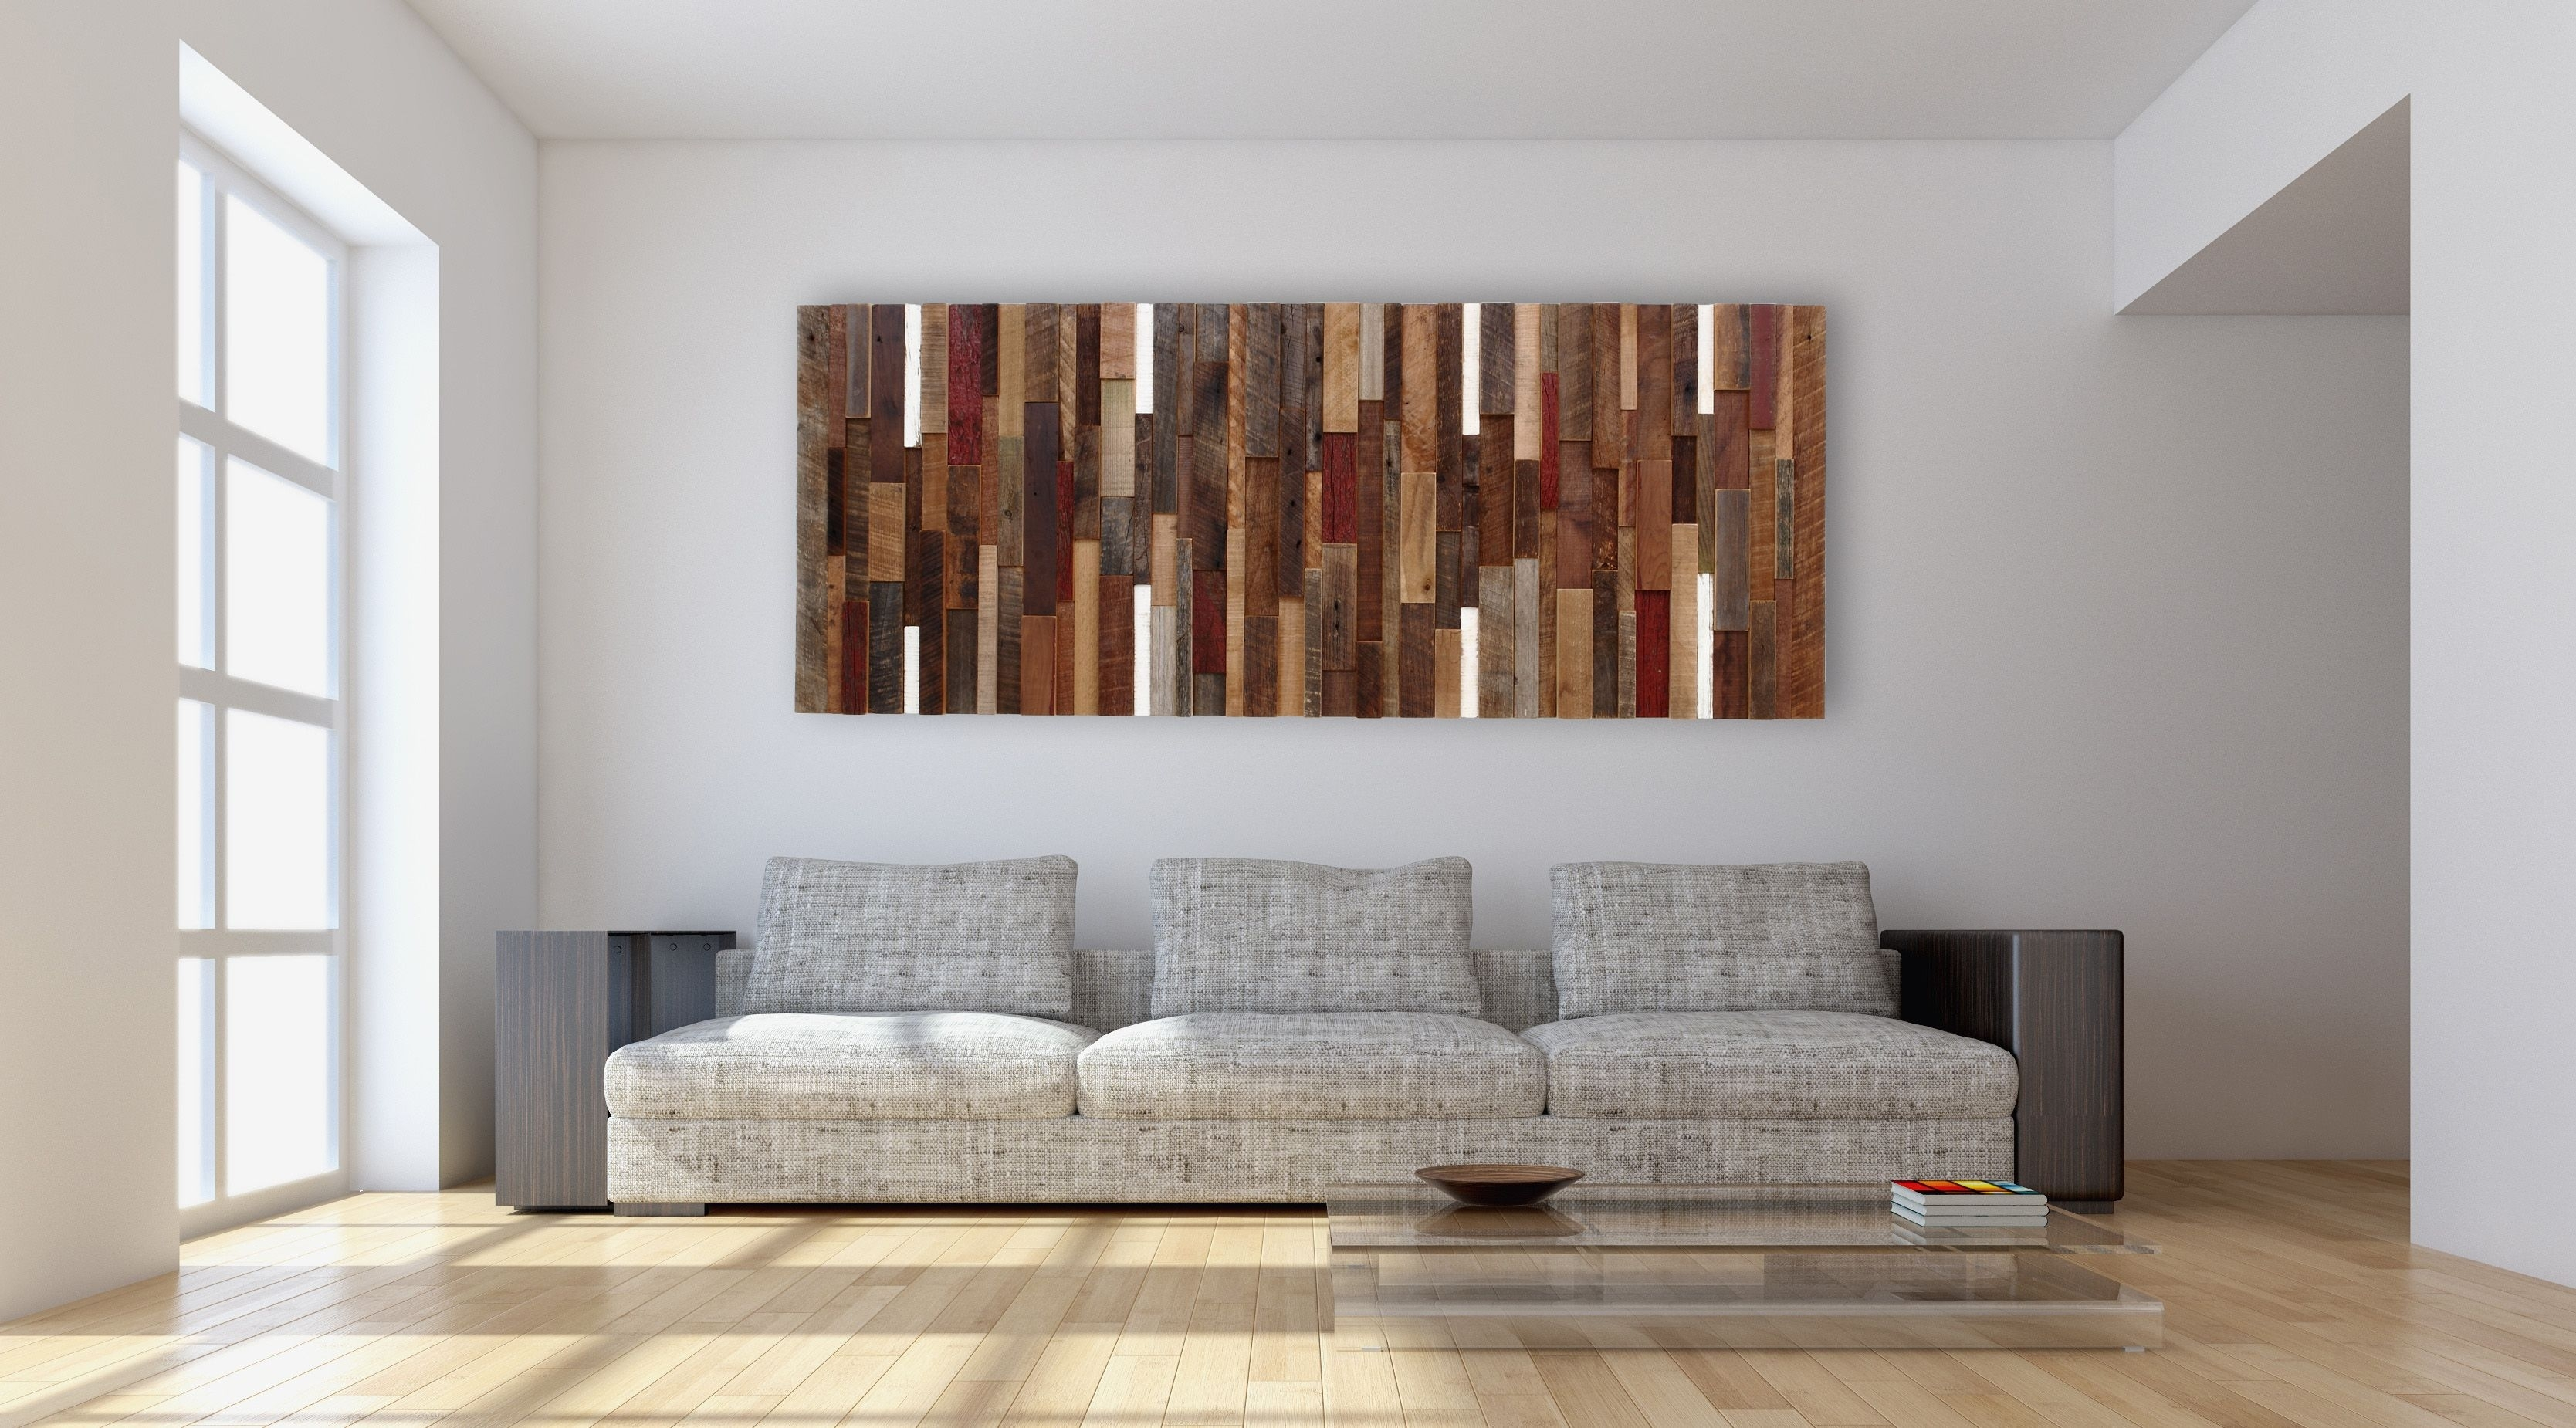 Hand Made Reclaimed Wood Wall Art, Made Intirely Of Reclaimed Barn Intended For Most Current Reclaimed Wood Wall Accents (Gallery 8 of 15)